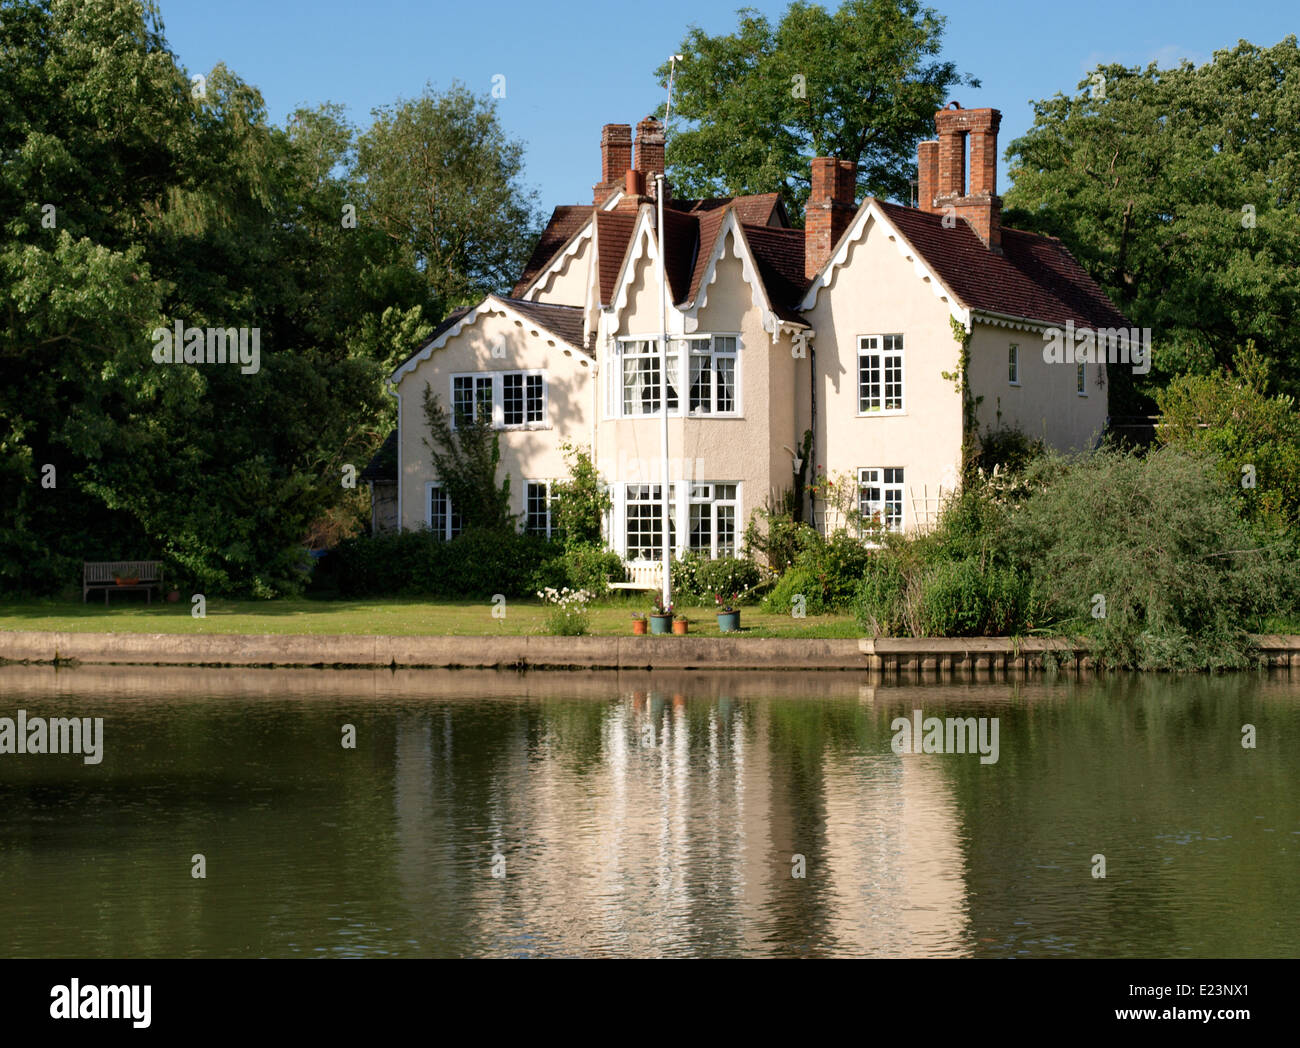 House on an island in the River Thames near Heyford Hill, Oxford, UK Stock Photo